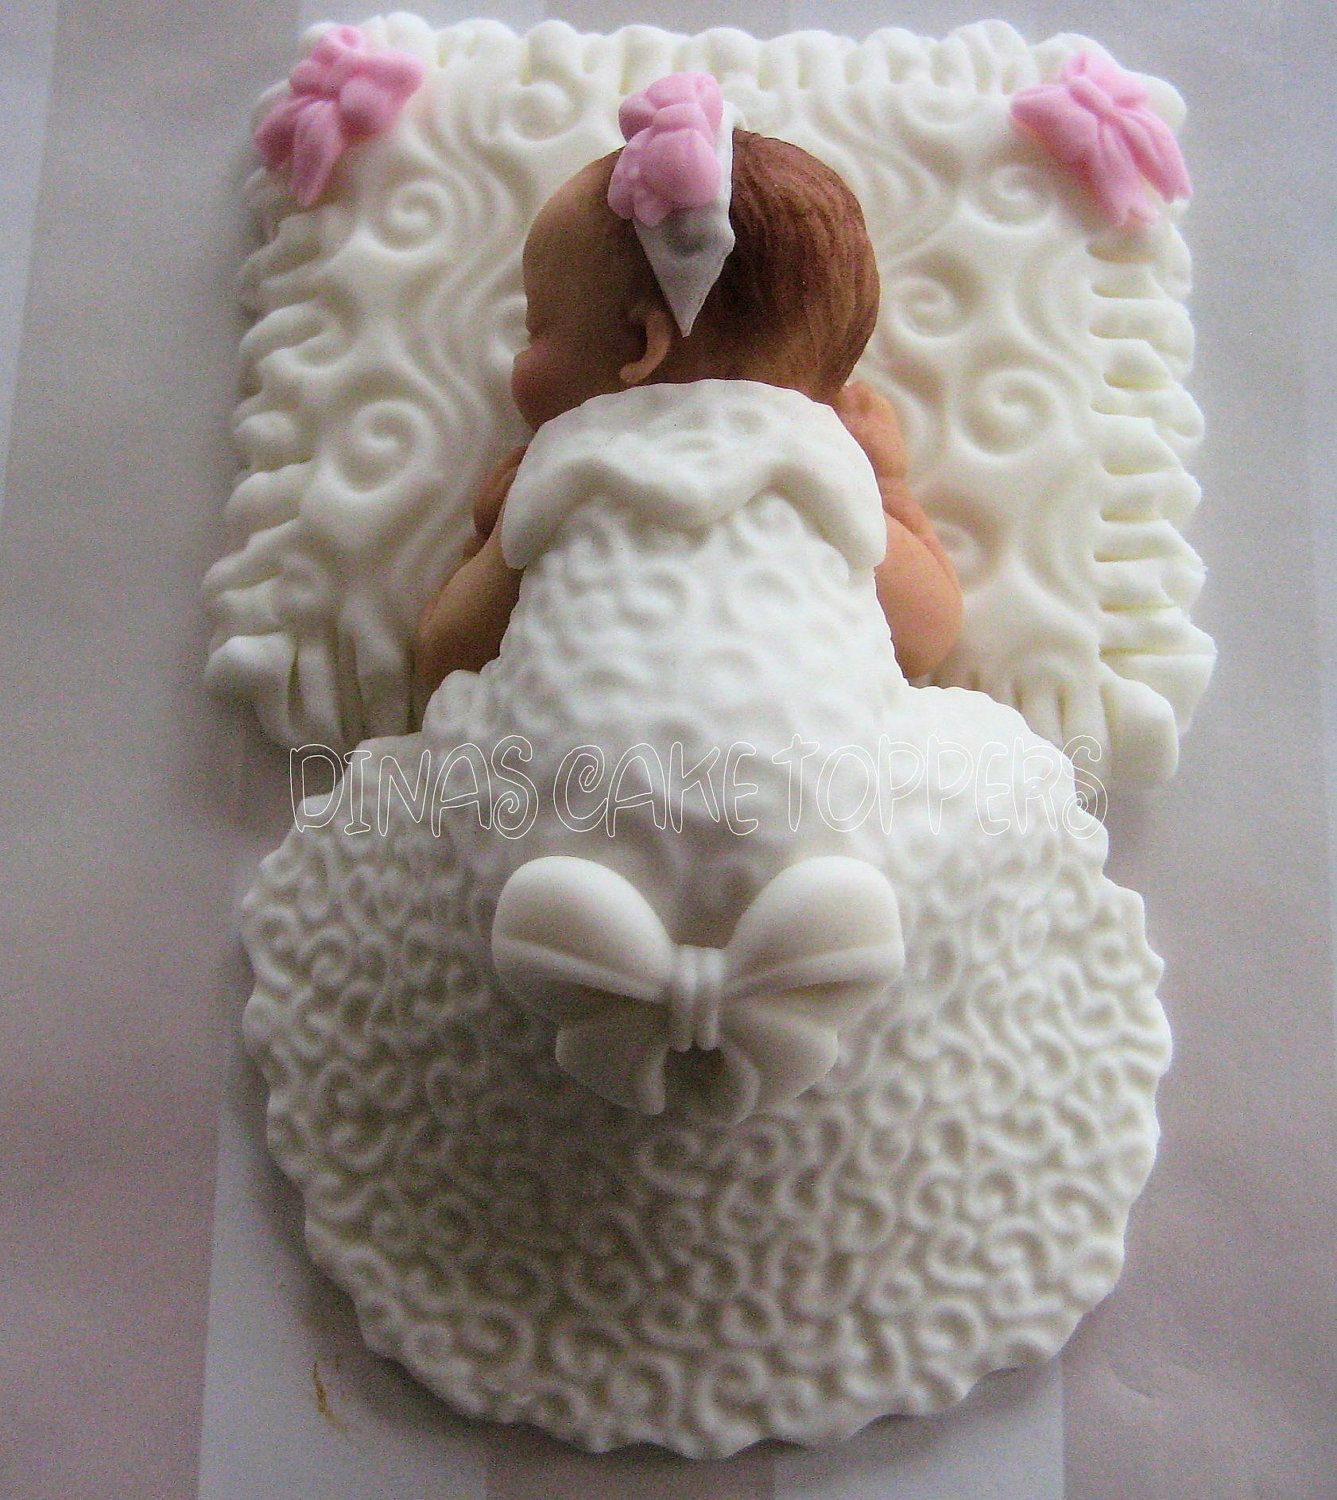 Baby Baptism Gift Ideas Pinterest : Christening baptism baby girl cake topper door